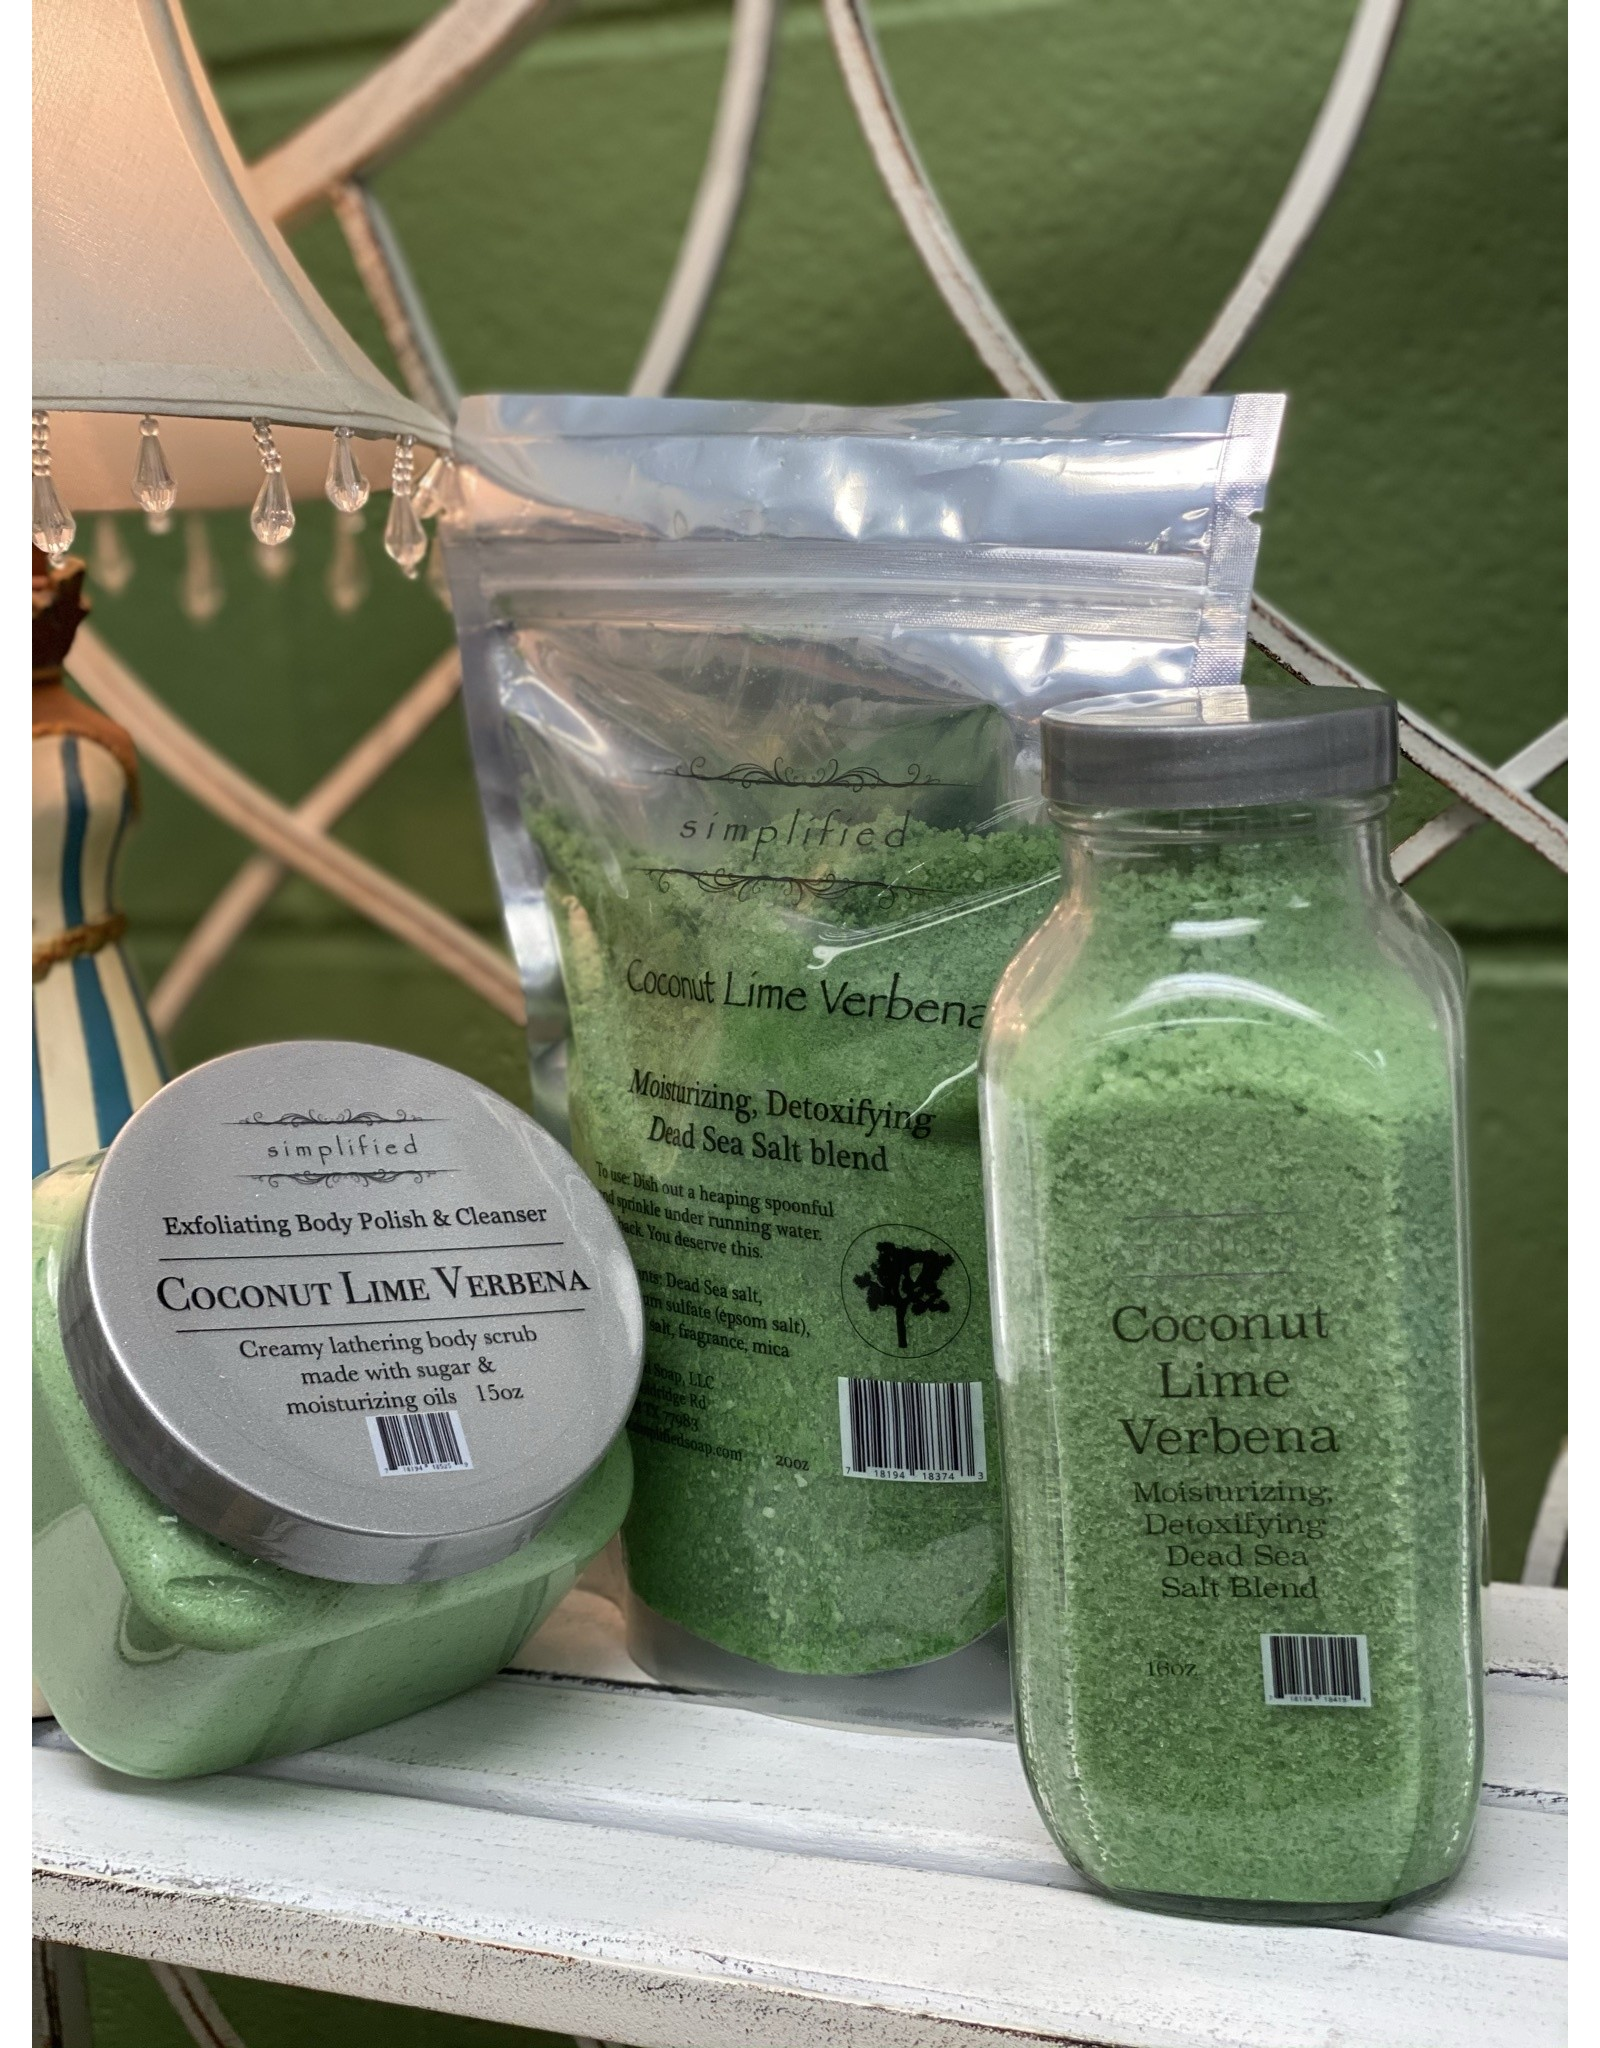 Coconut Lime Verbena Body Polish & Cleanser ONE SIZE